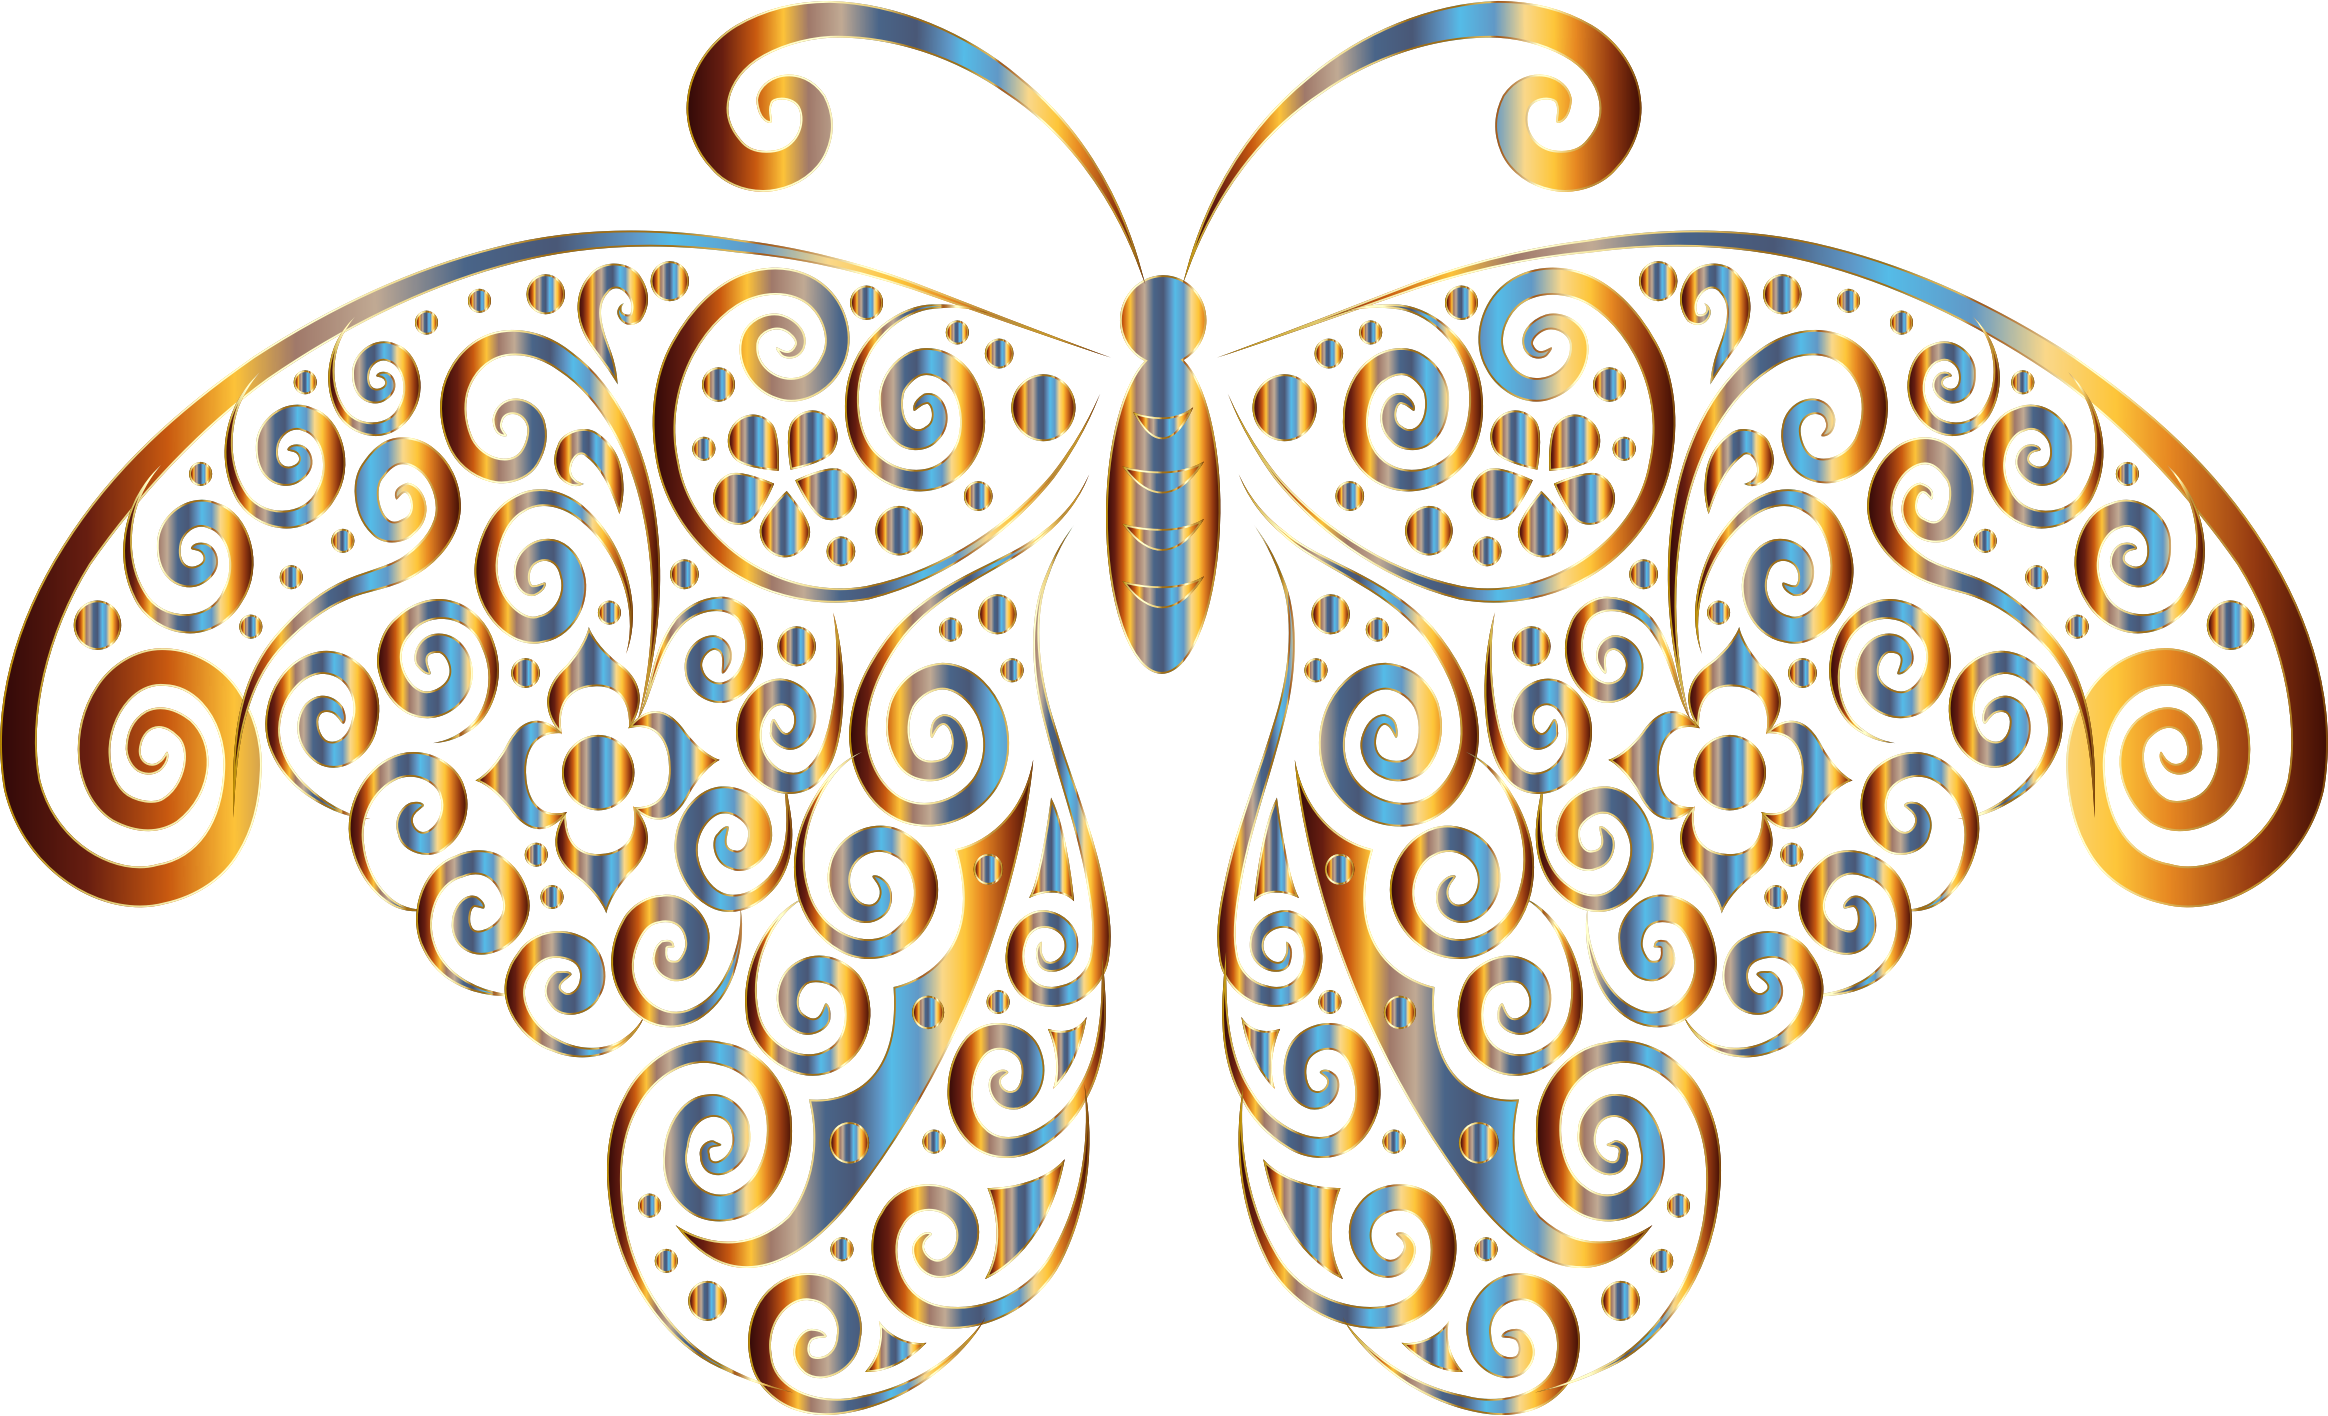 Prismatic Floral Flourish Butterfly Silhouette 5 No Background by GDJ